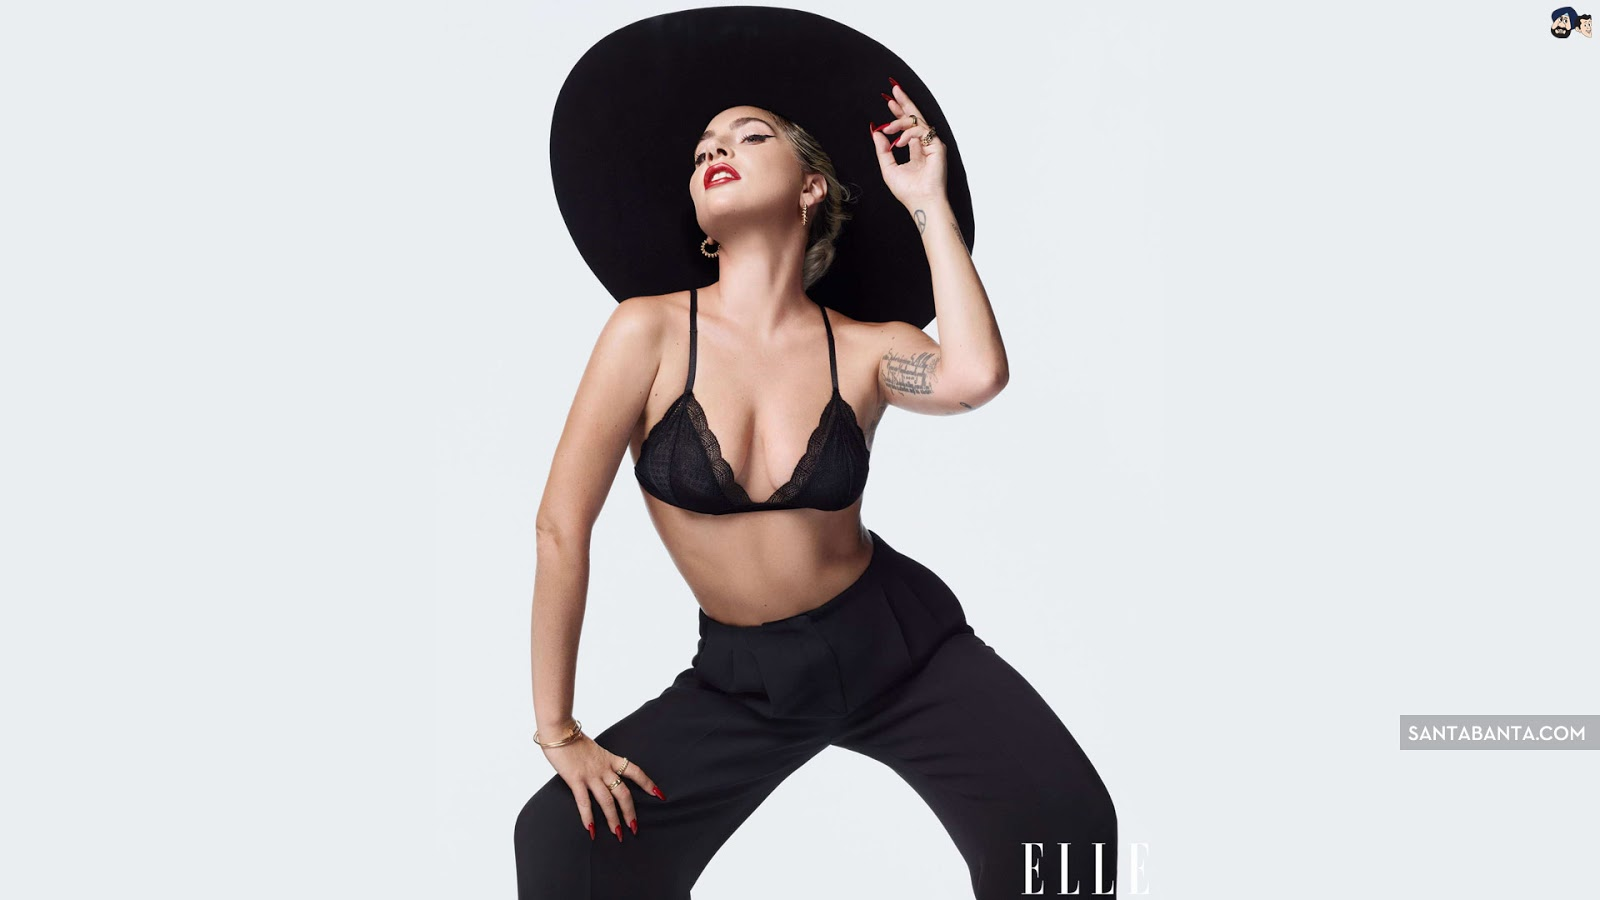 Lady Gaga Black Bra Hot Wallpaper